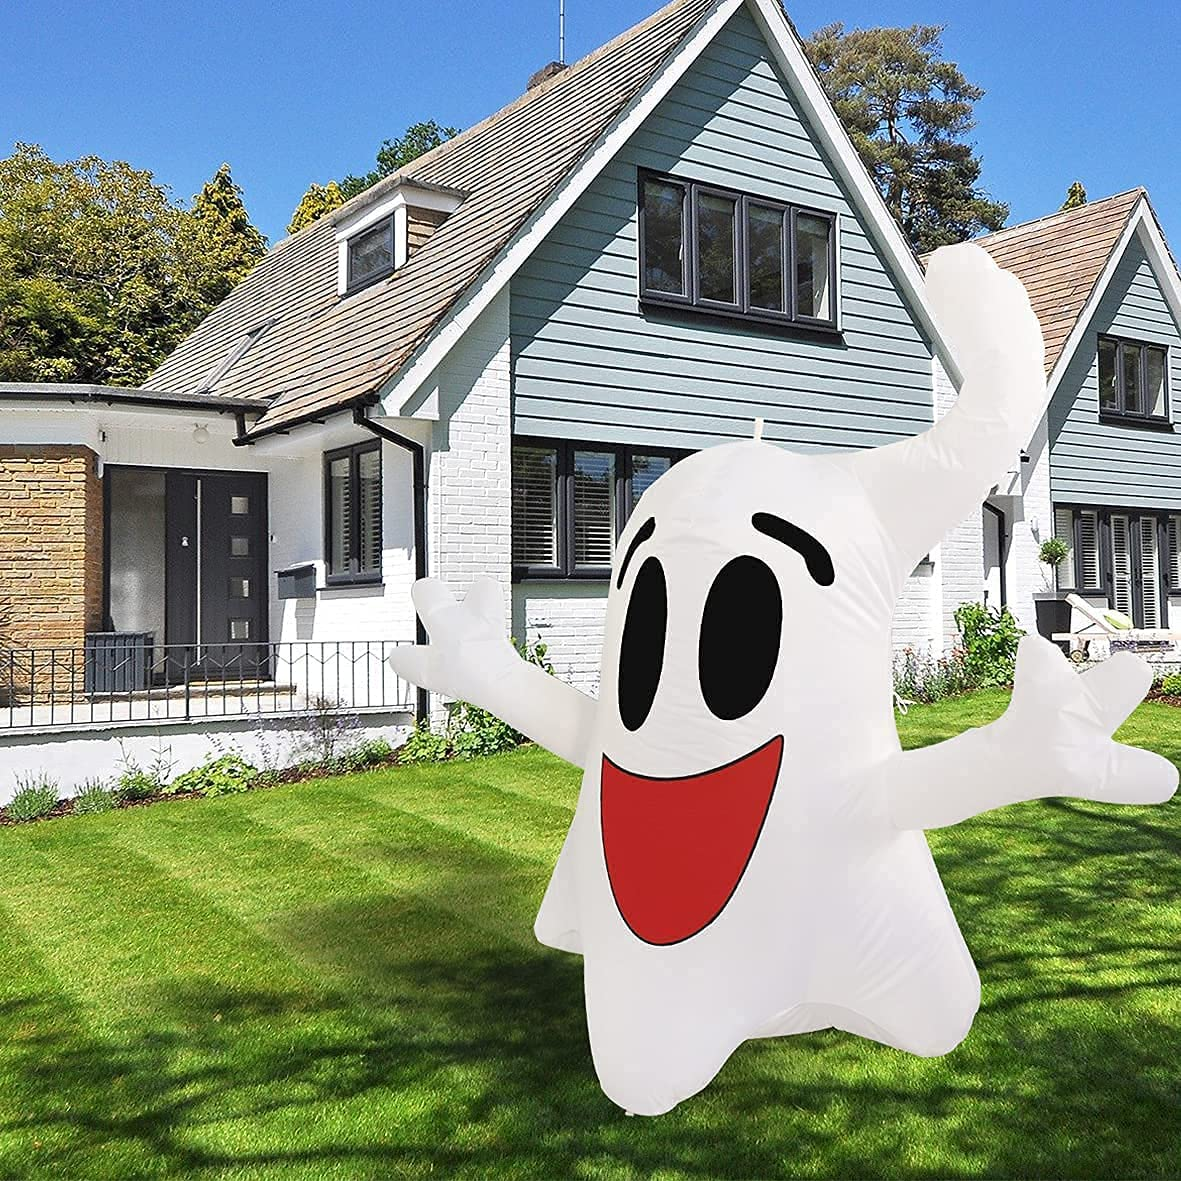 Halloween Inflatable Decoration 4ft Hanging Happy Ghost with Built-in Color-Changing LED Light Blow-up Yard Decoration COMIN Halloween Inflatables for Party/Indoor/Outdoor/Yard/Garden/Lawn